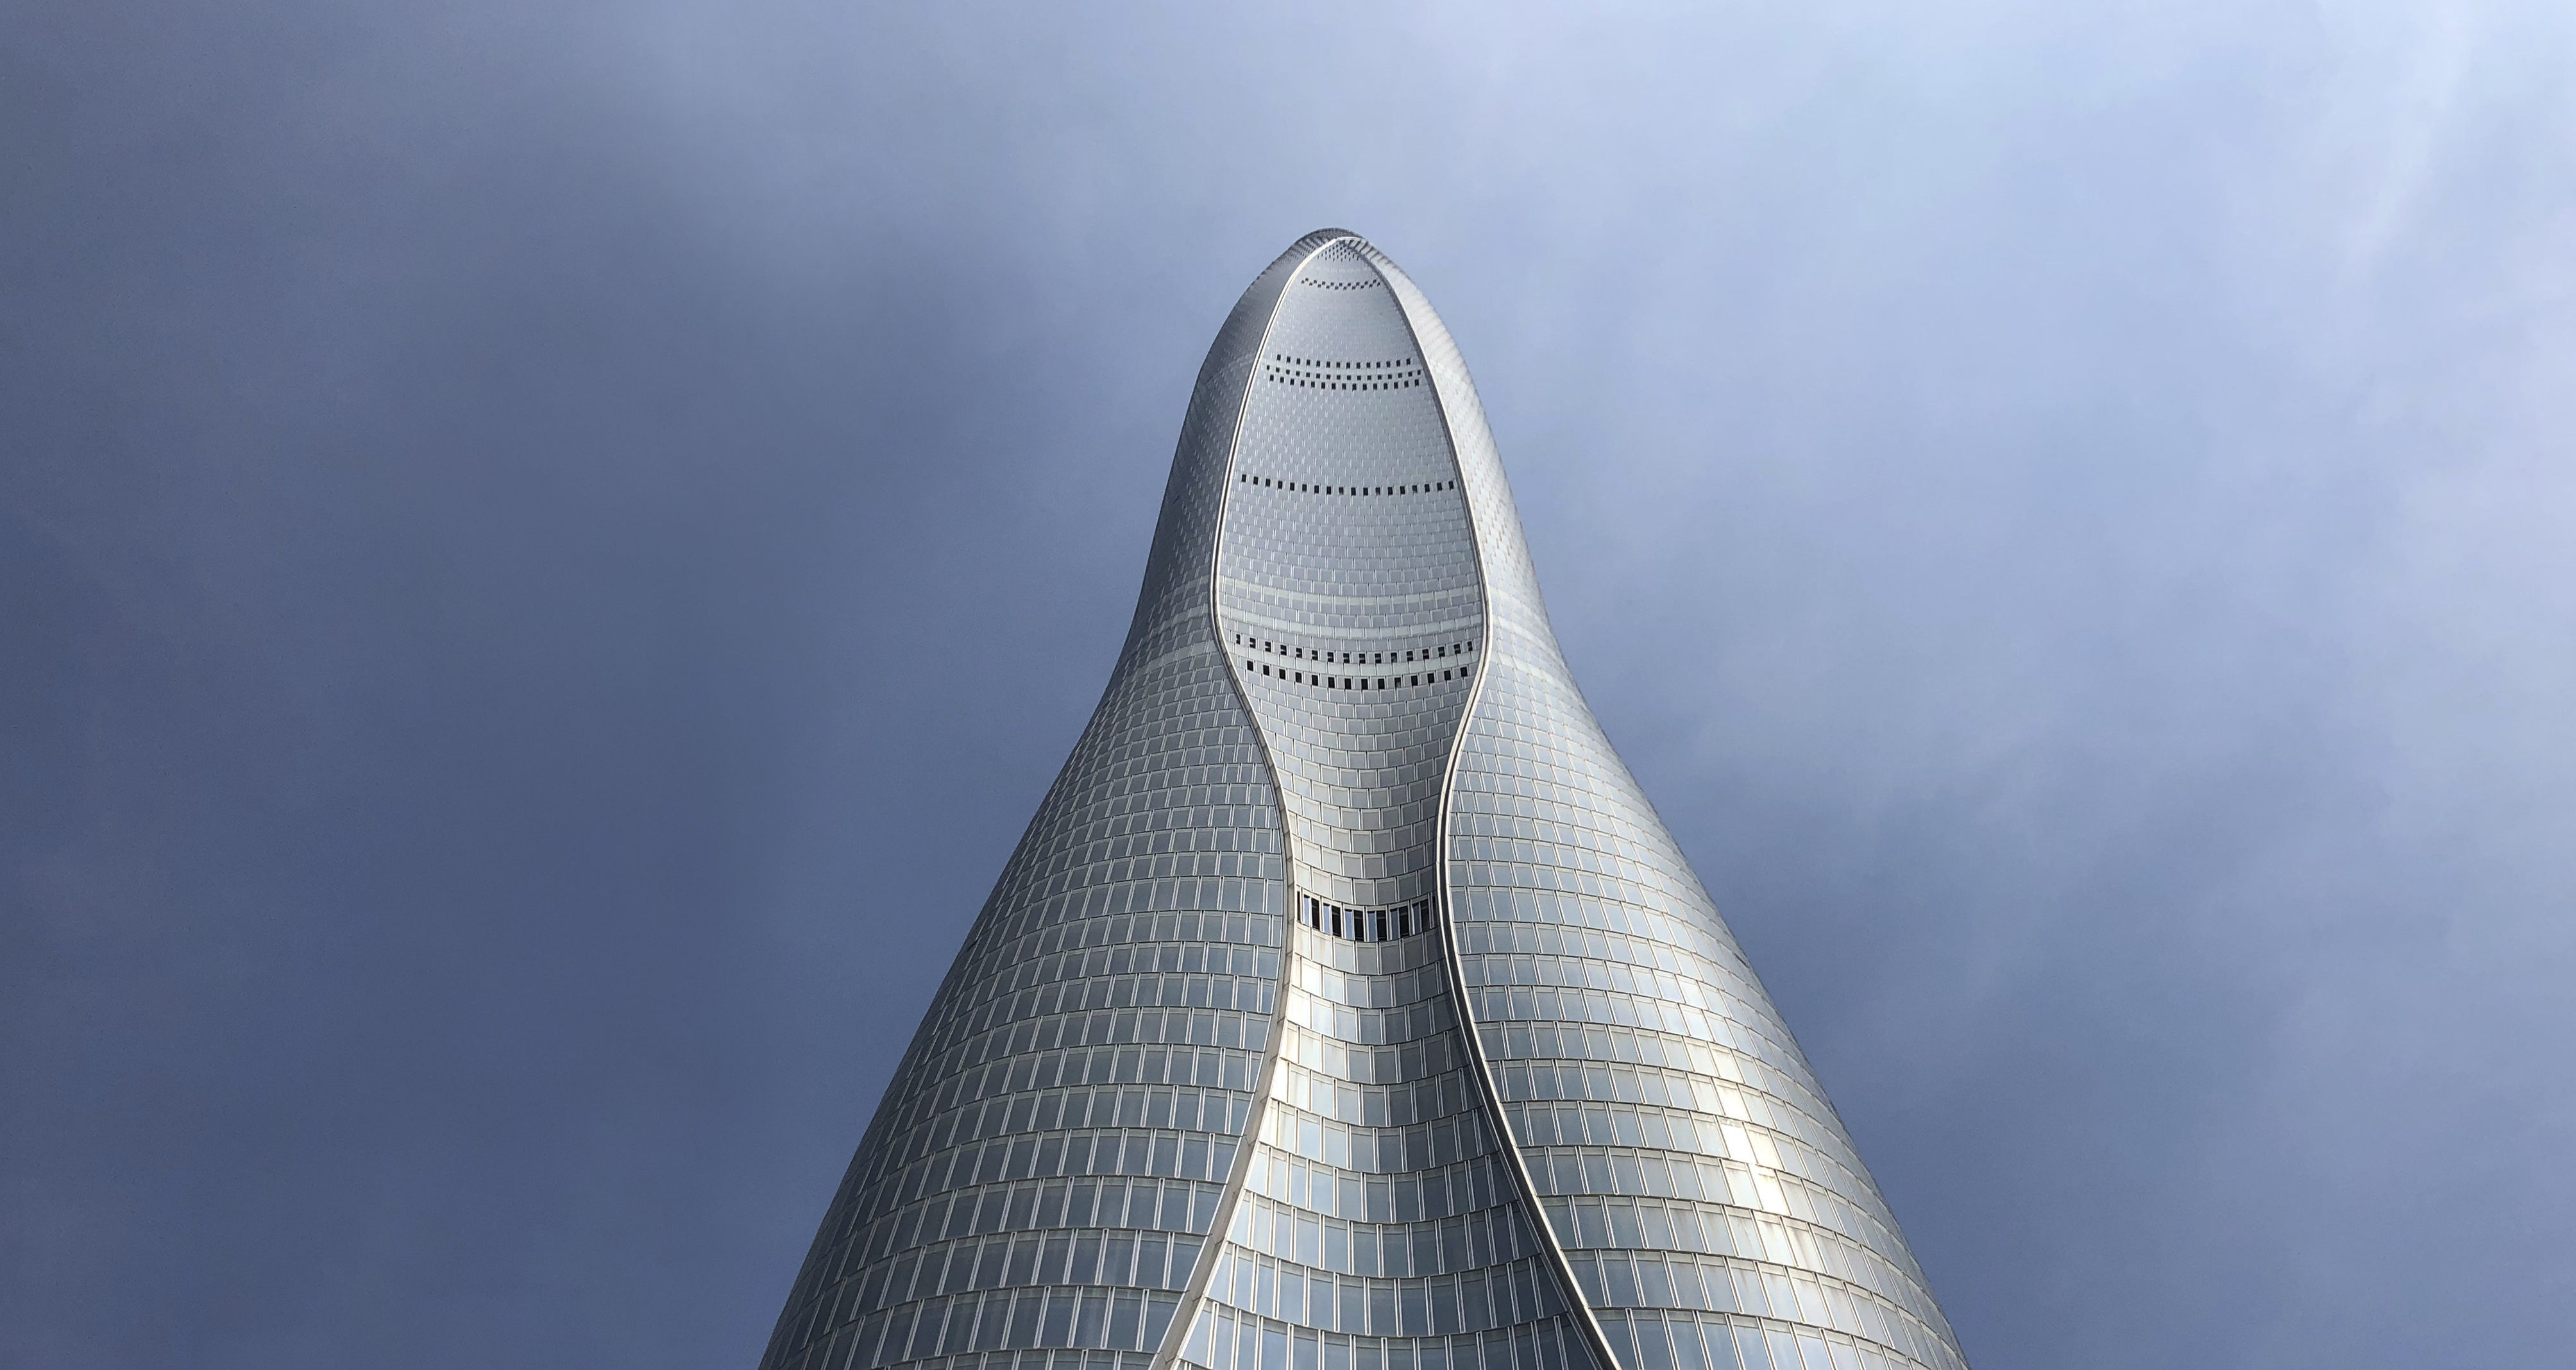 Tianjin S 7th Highest Glass Wonder Of The World Glastory